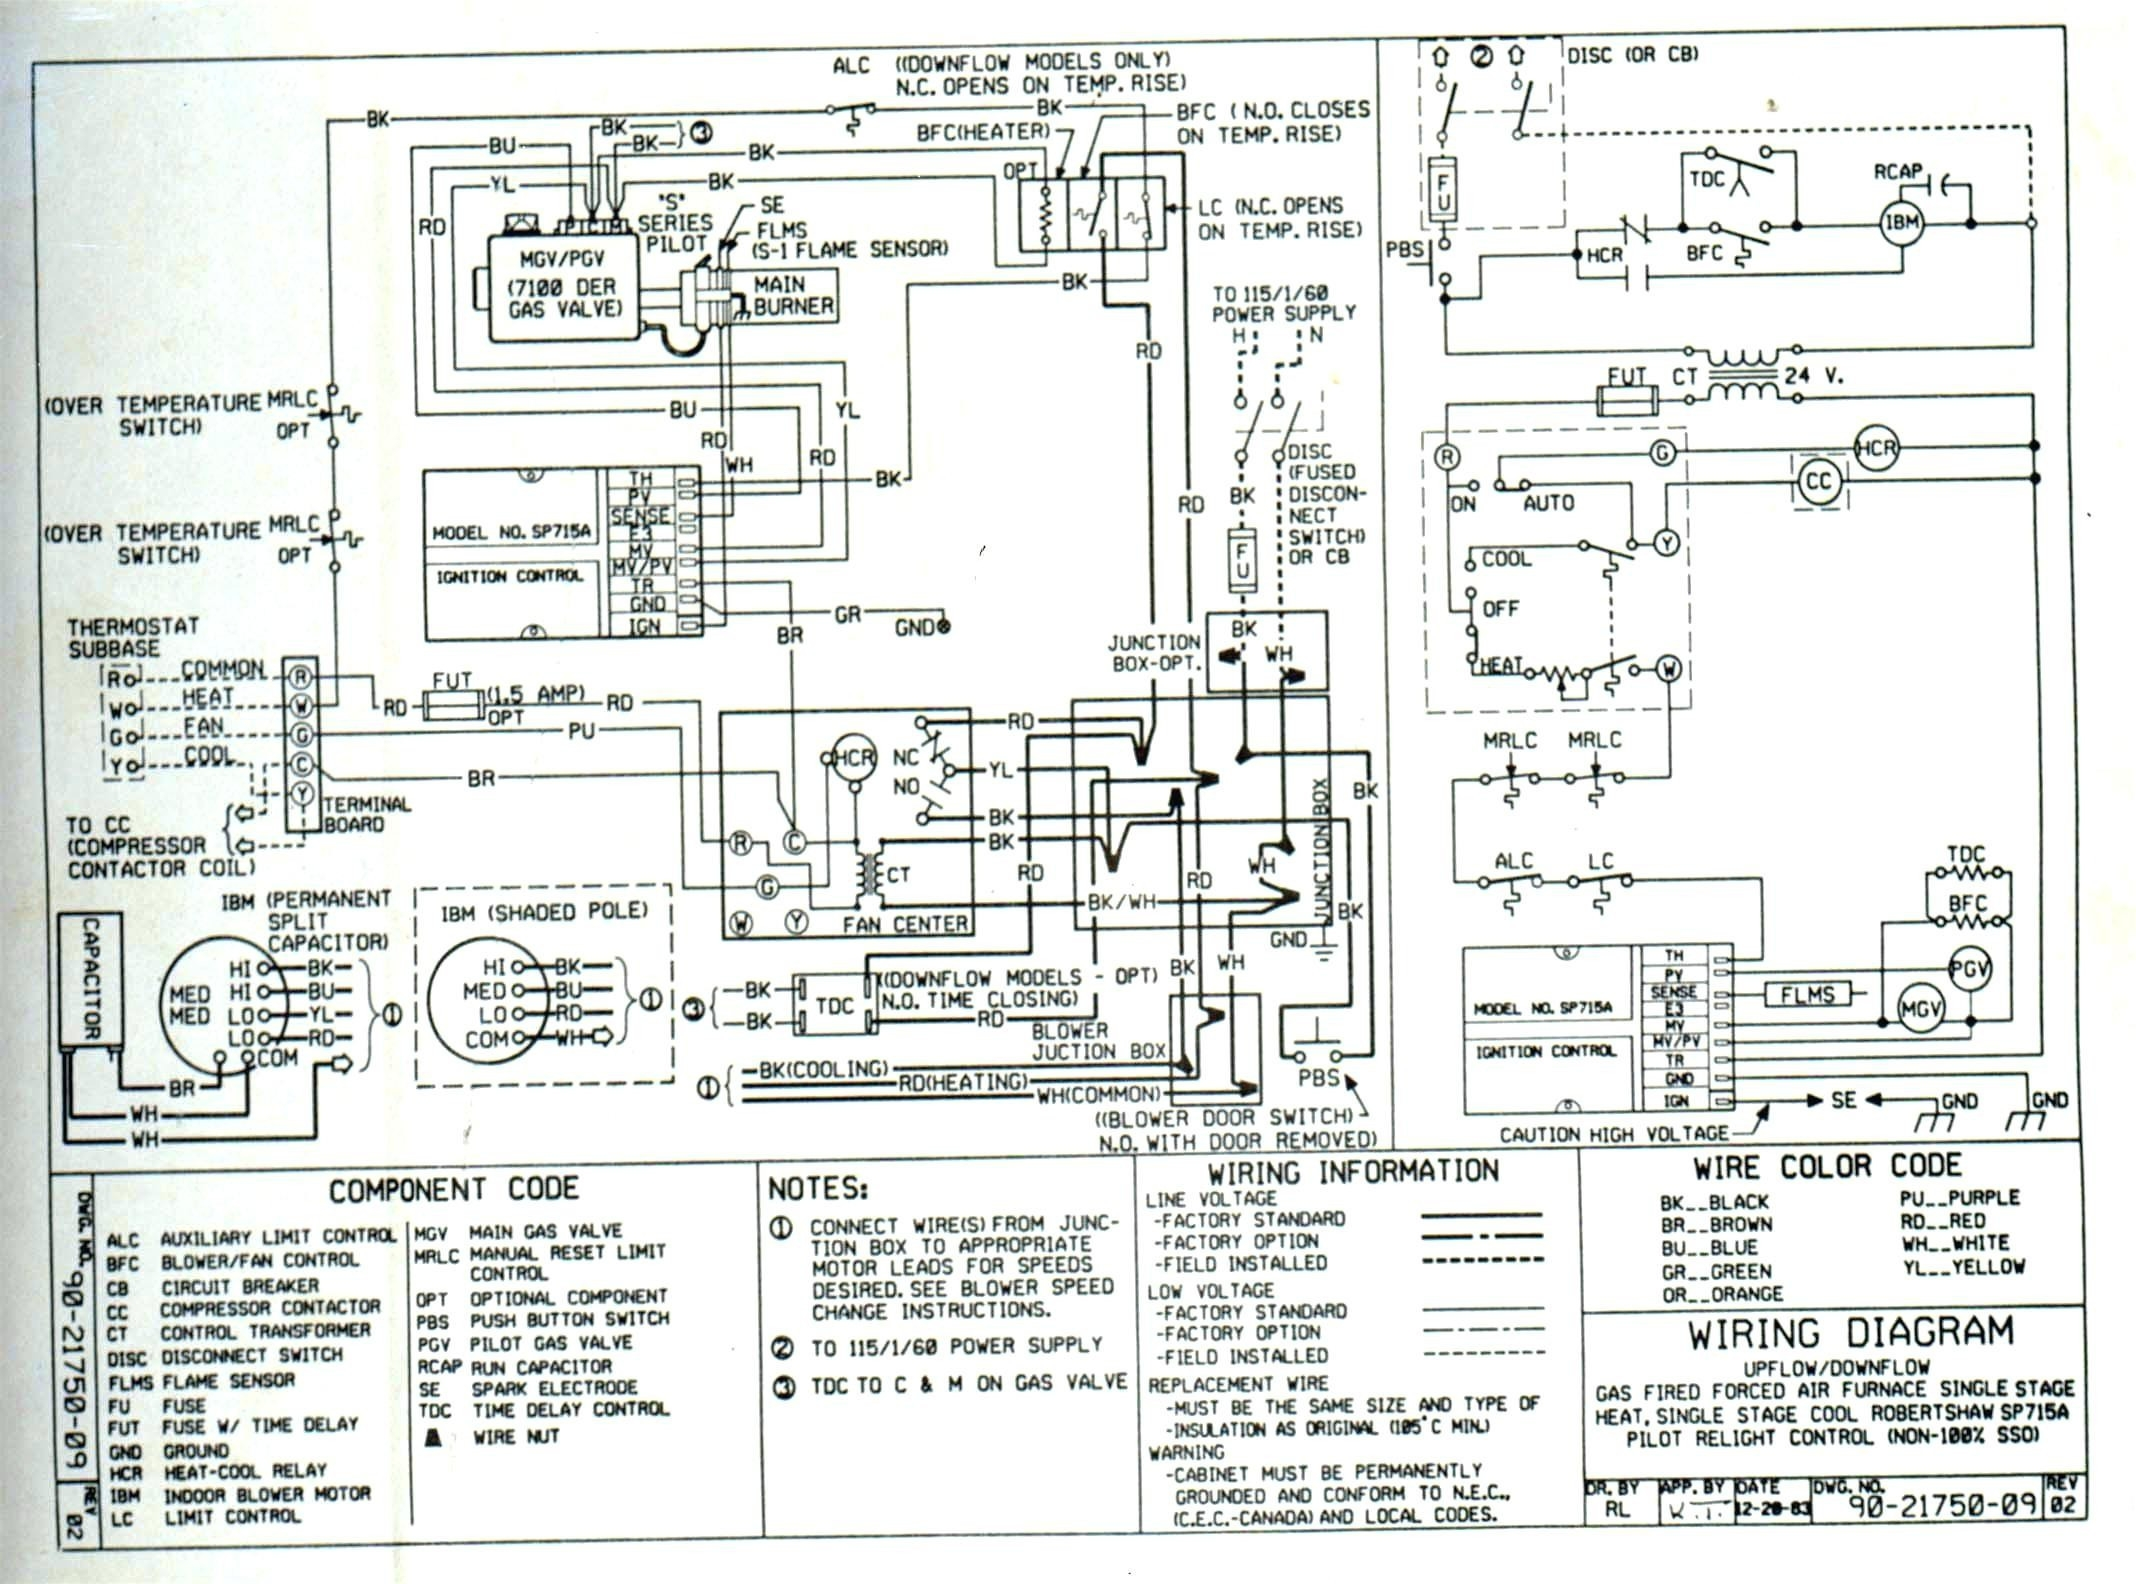 trane unit heater wiring diagram Download-Wiring Diagram S Plan Awesome Trane Thermostat Wiring Diagram Luxury Wiring Diagram For Trane 15-f